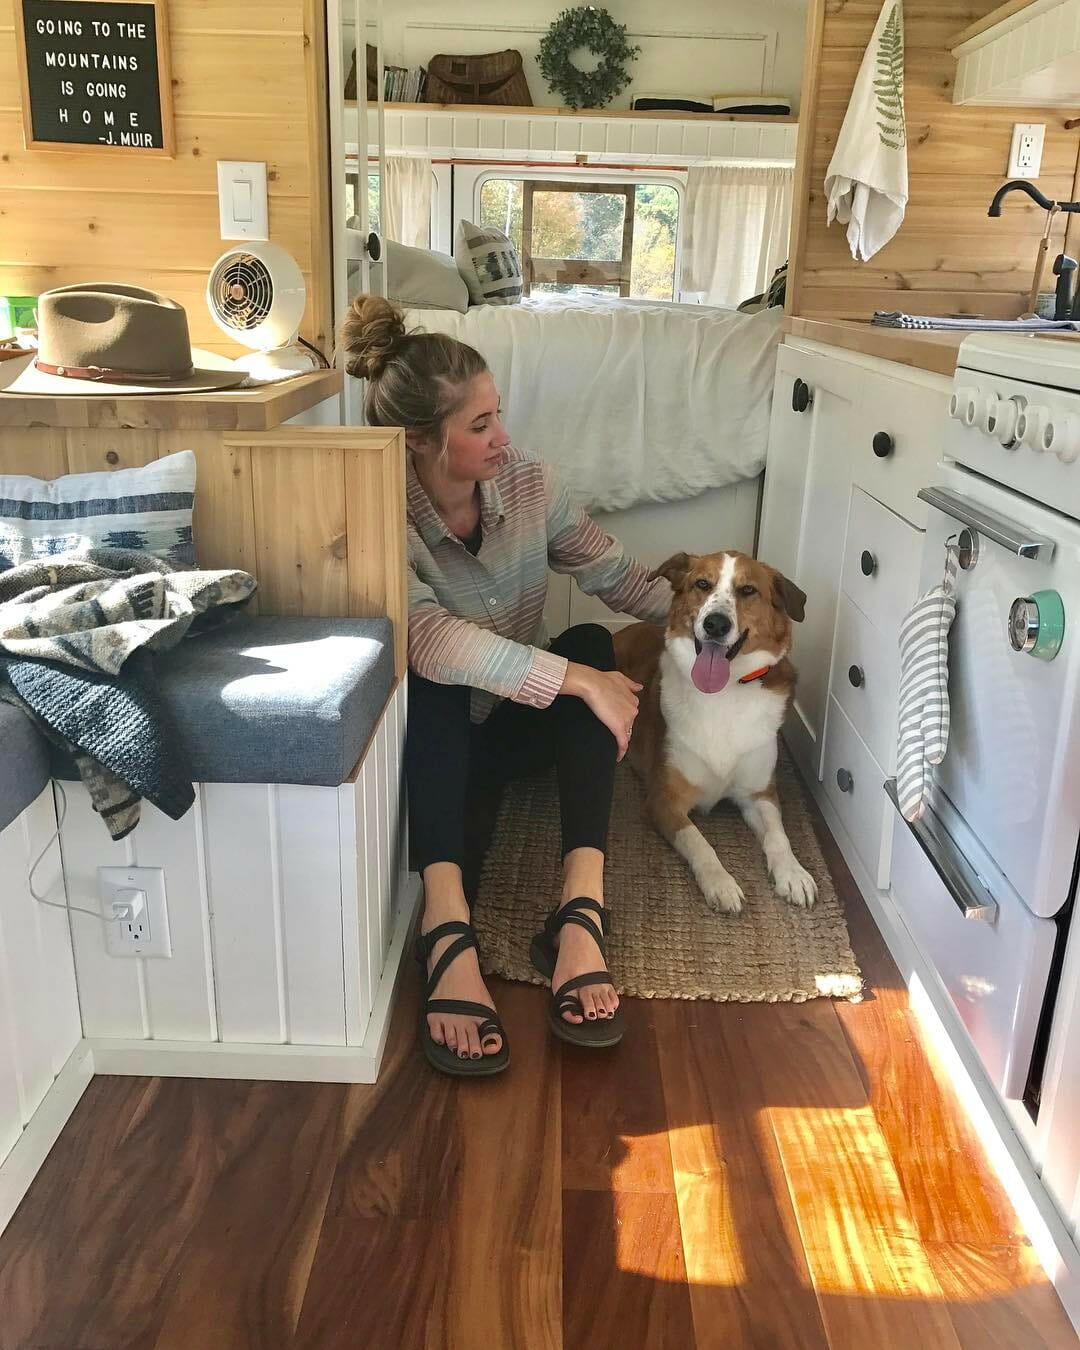 living in a tiny home, bus or RV